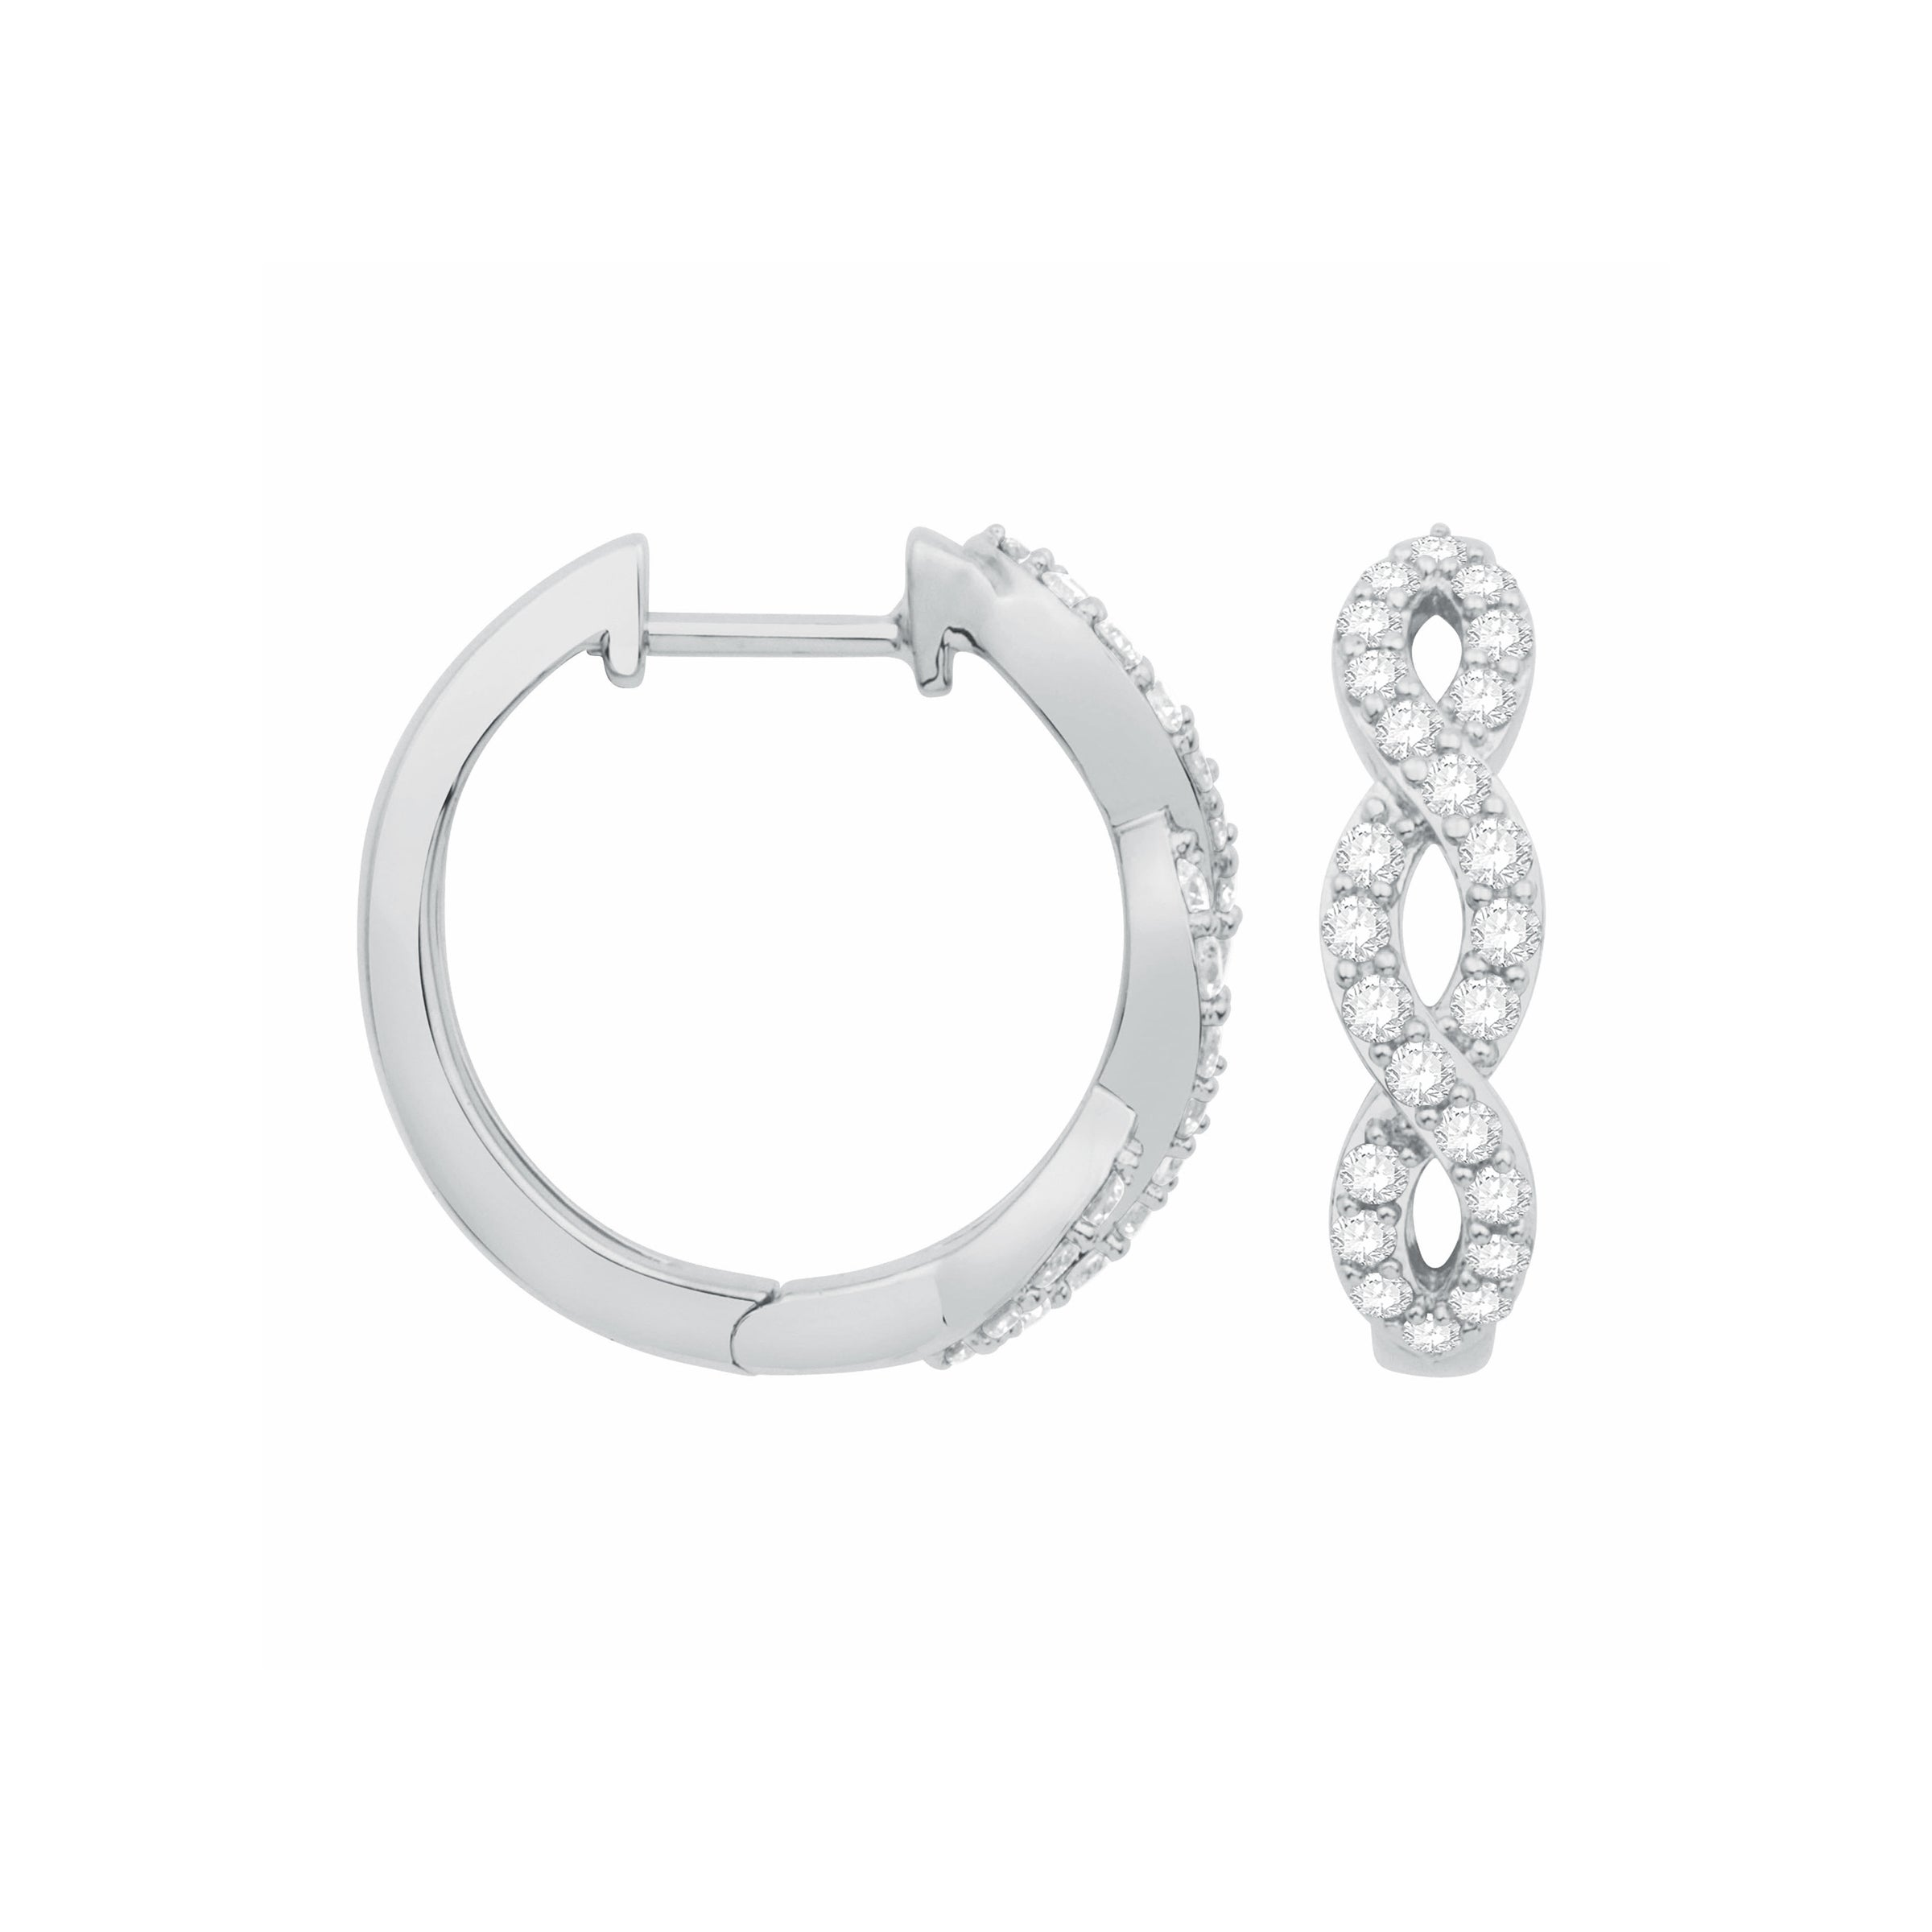 Intertwining Diamond Hoop Earrings, 14K White Gold